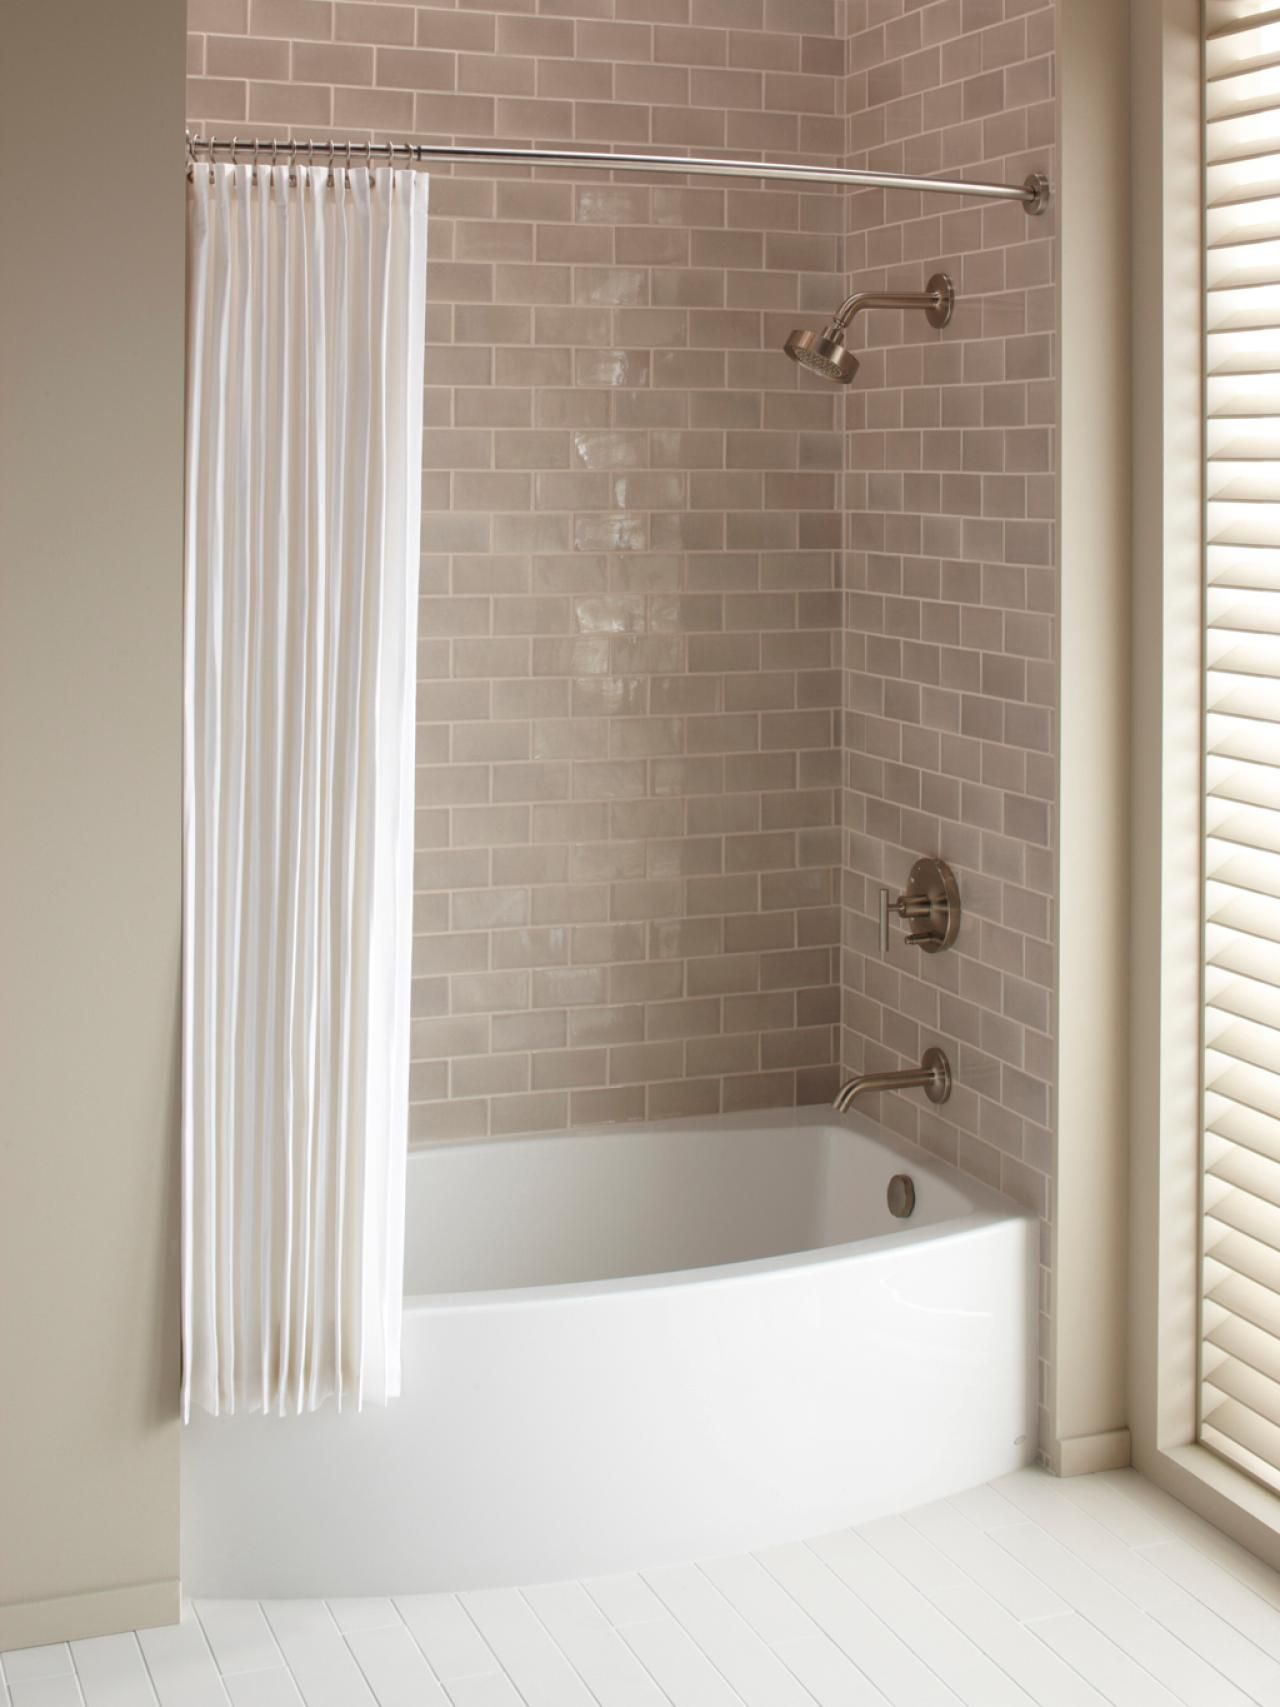 Bath Cheap Vs Steep Bathtubs Bathroom Design